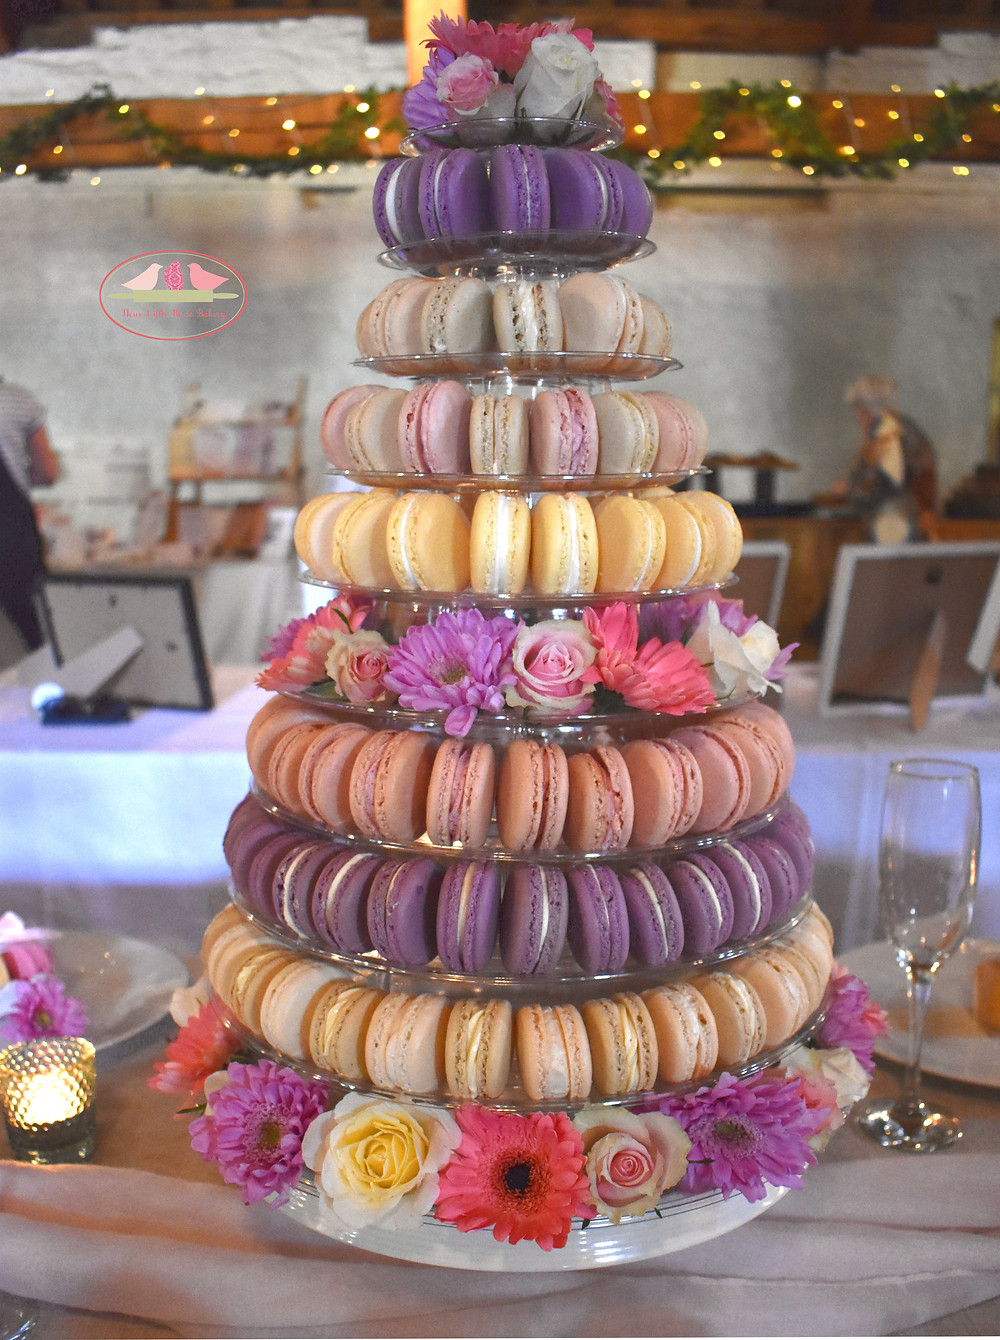 Macaron Towers in Ikley